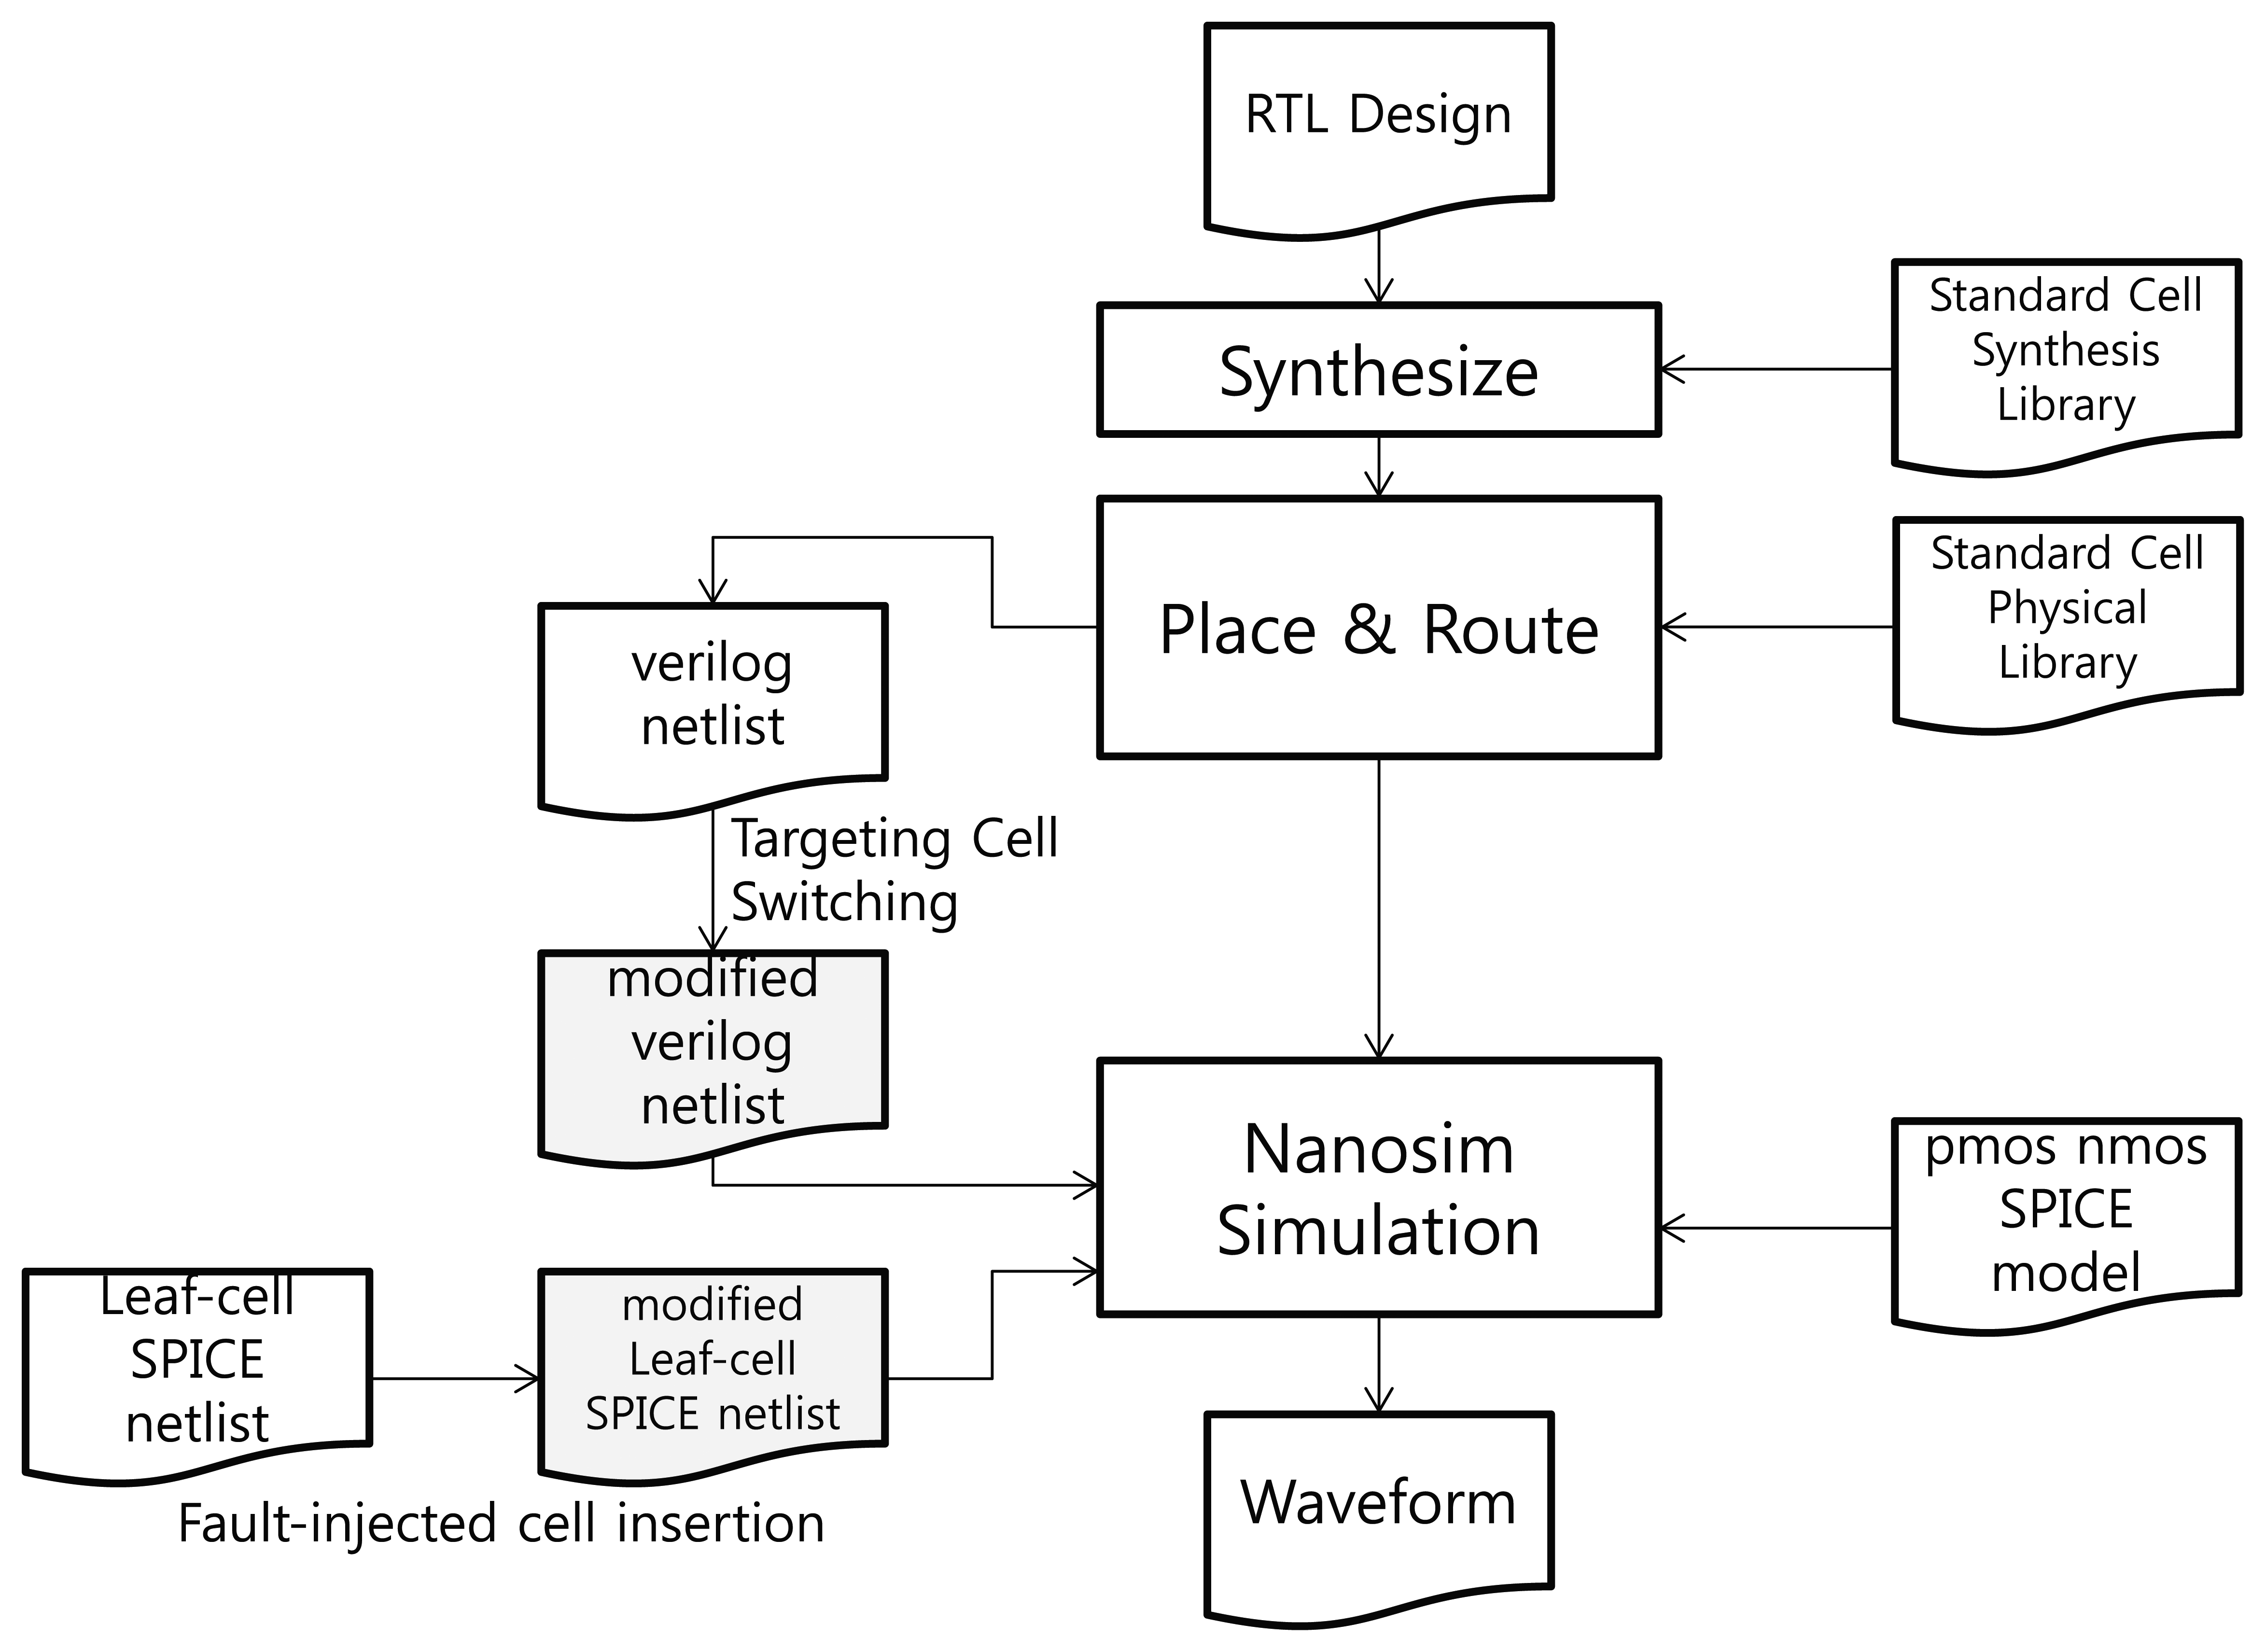 synthesis of library system